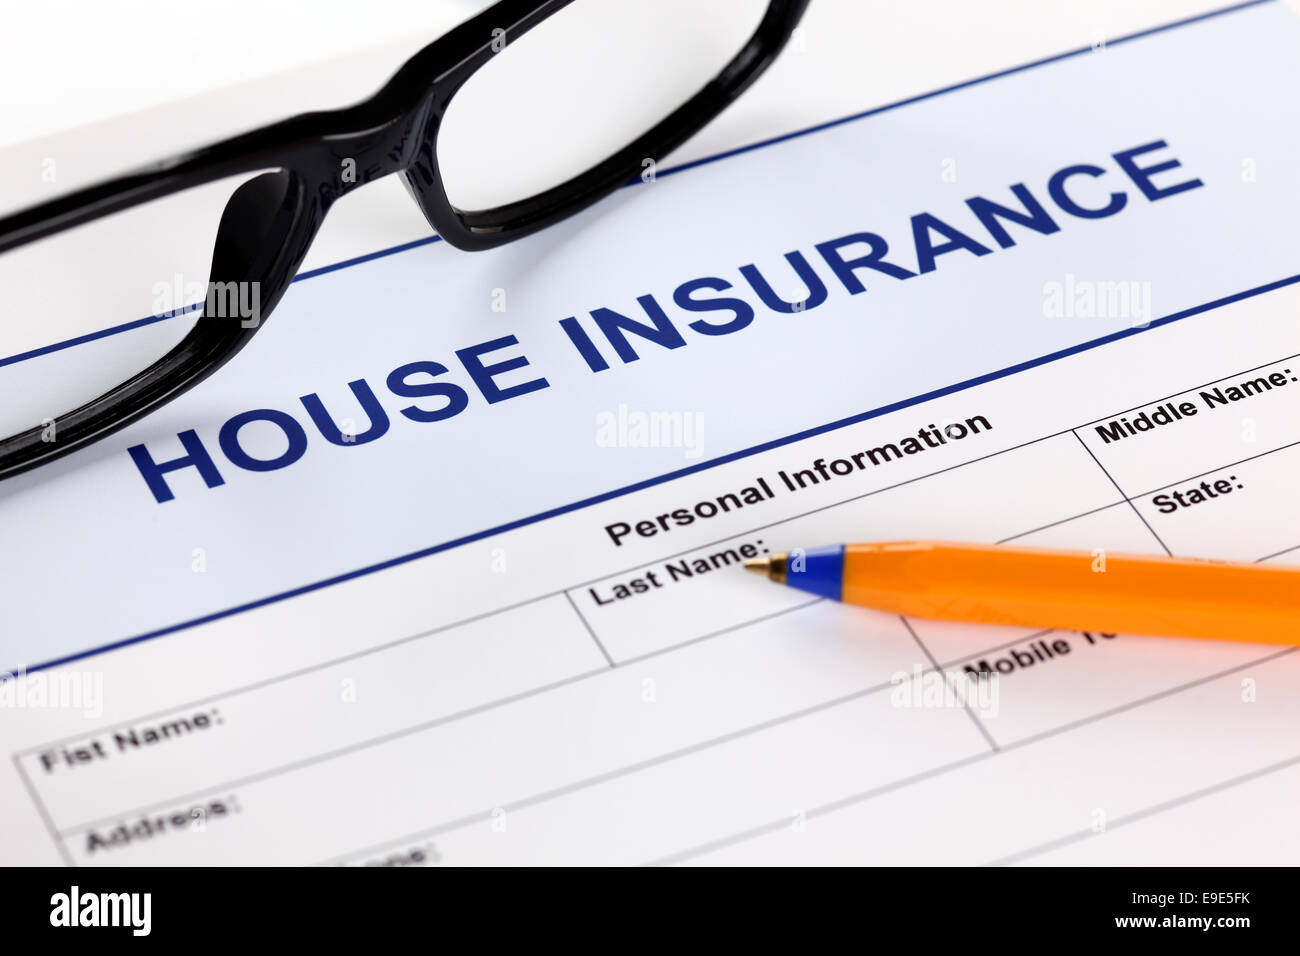 House insurance application form with glasses and ballpoint pen. - Stock Image